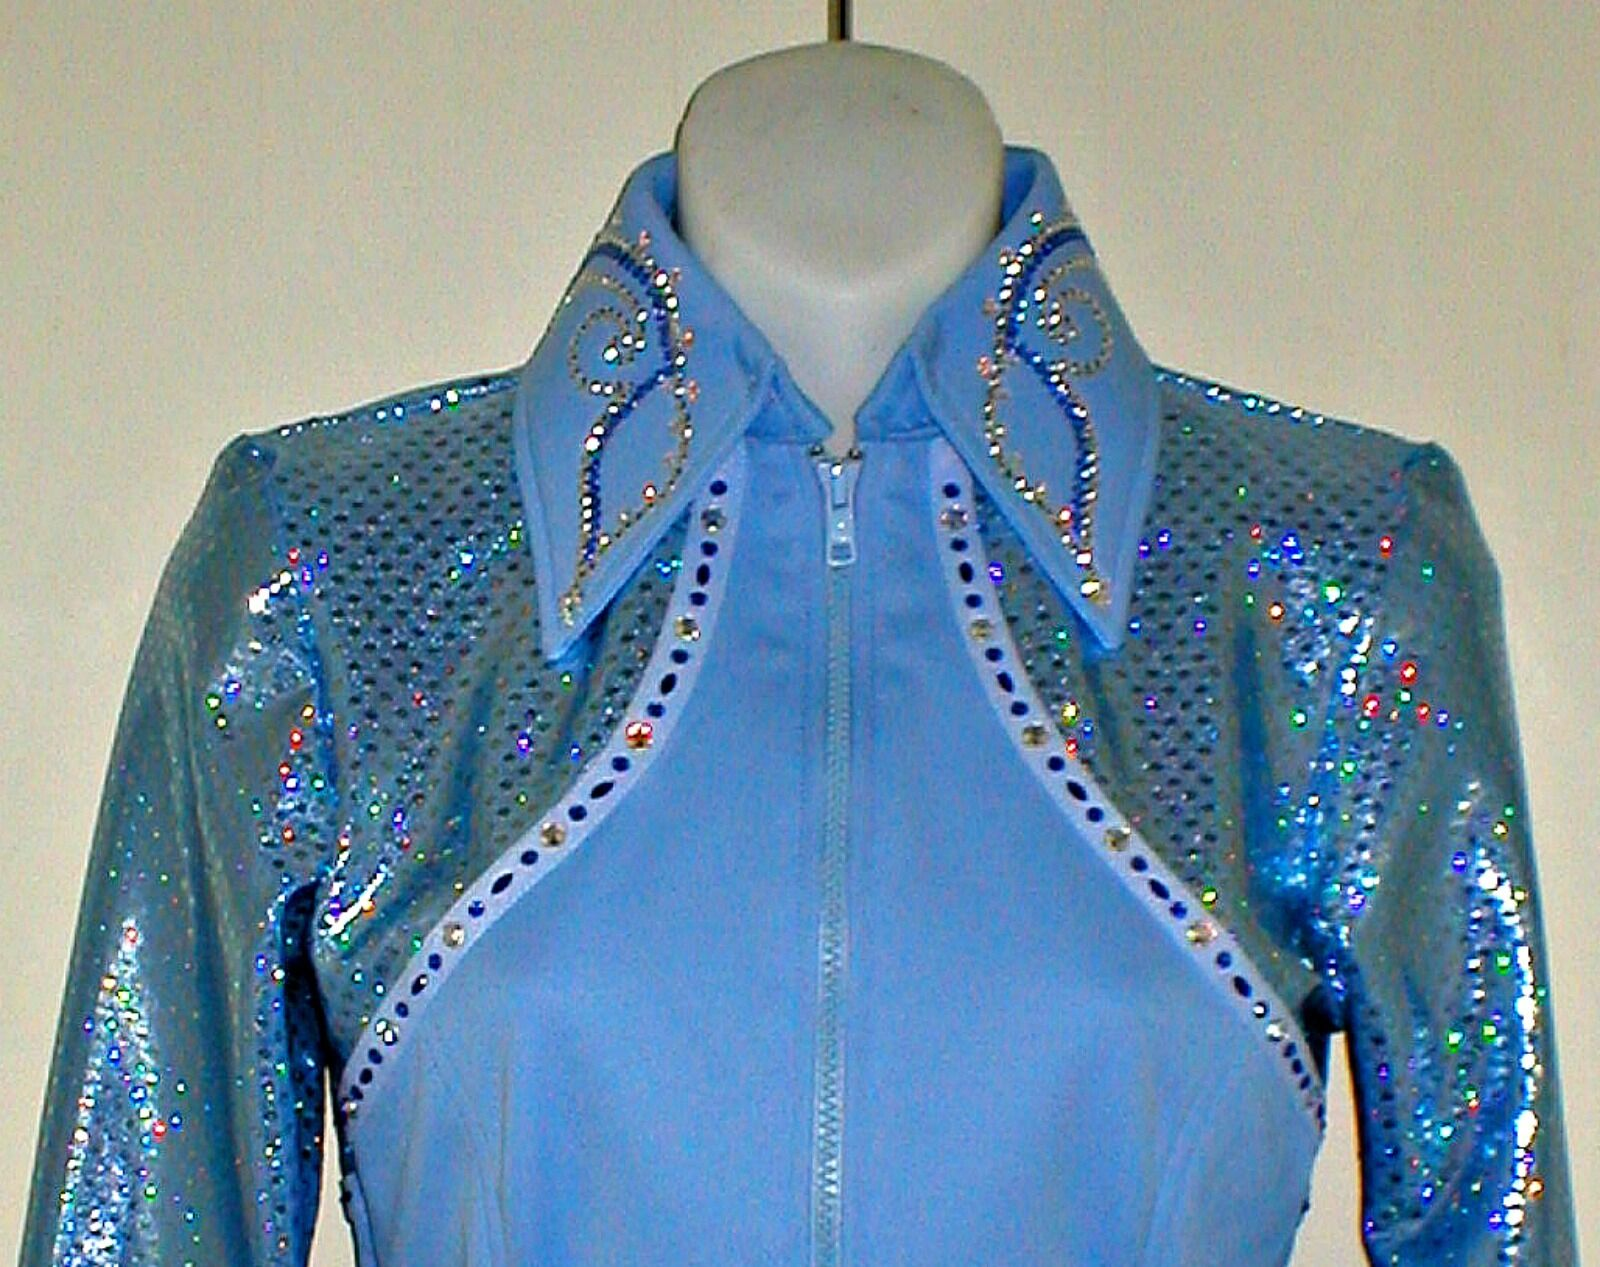 Youth Sky bluee Rail, Glamor,  Reining, Trail, Pleasure, Rodeo Shirt w cuffs  free delivery